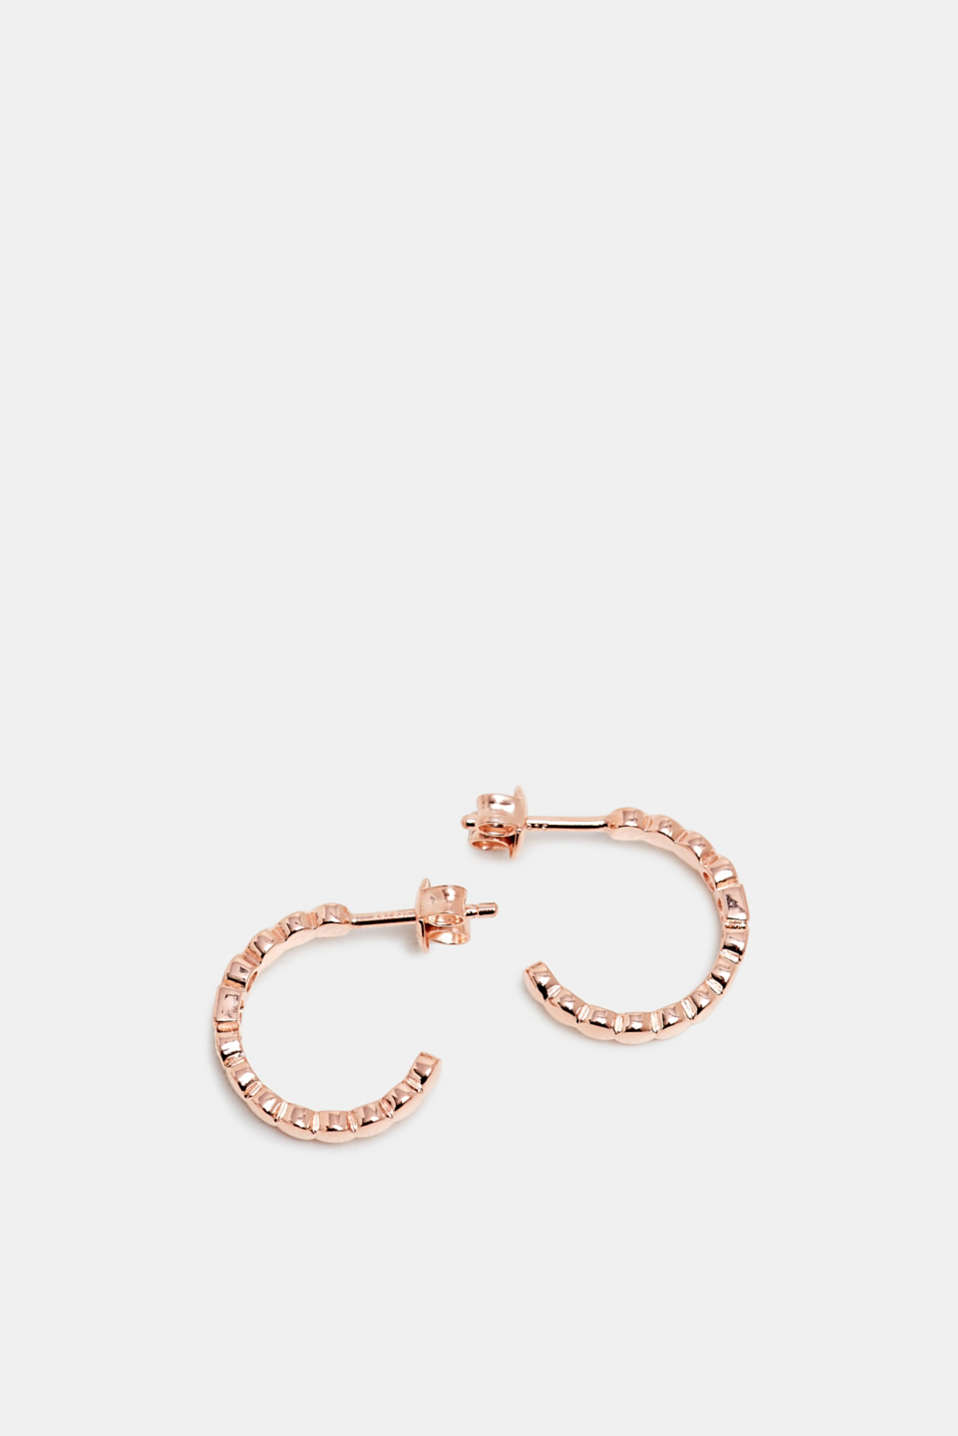 Hoop earrings with zirconia, sterling silver, ROSEGOLD, detail image number 1